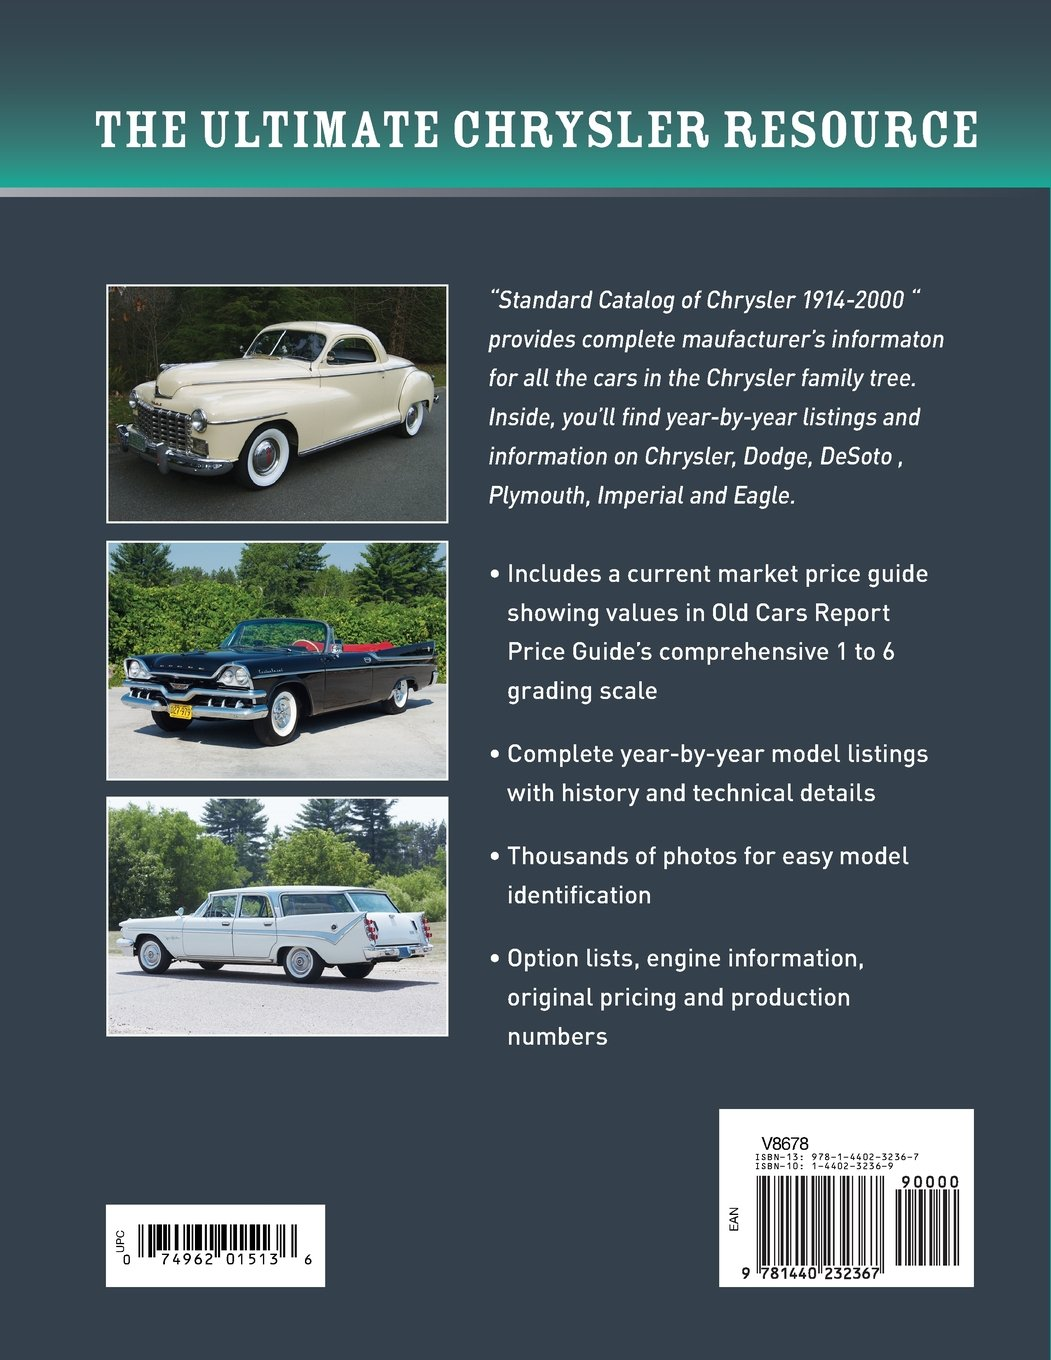 Standard Catalog of Chrysler, 1914-2000: History, Photos, Technical ...